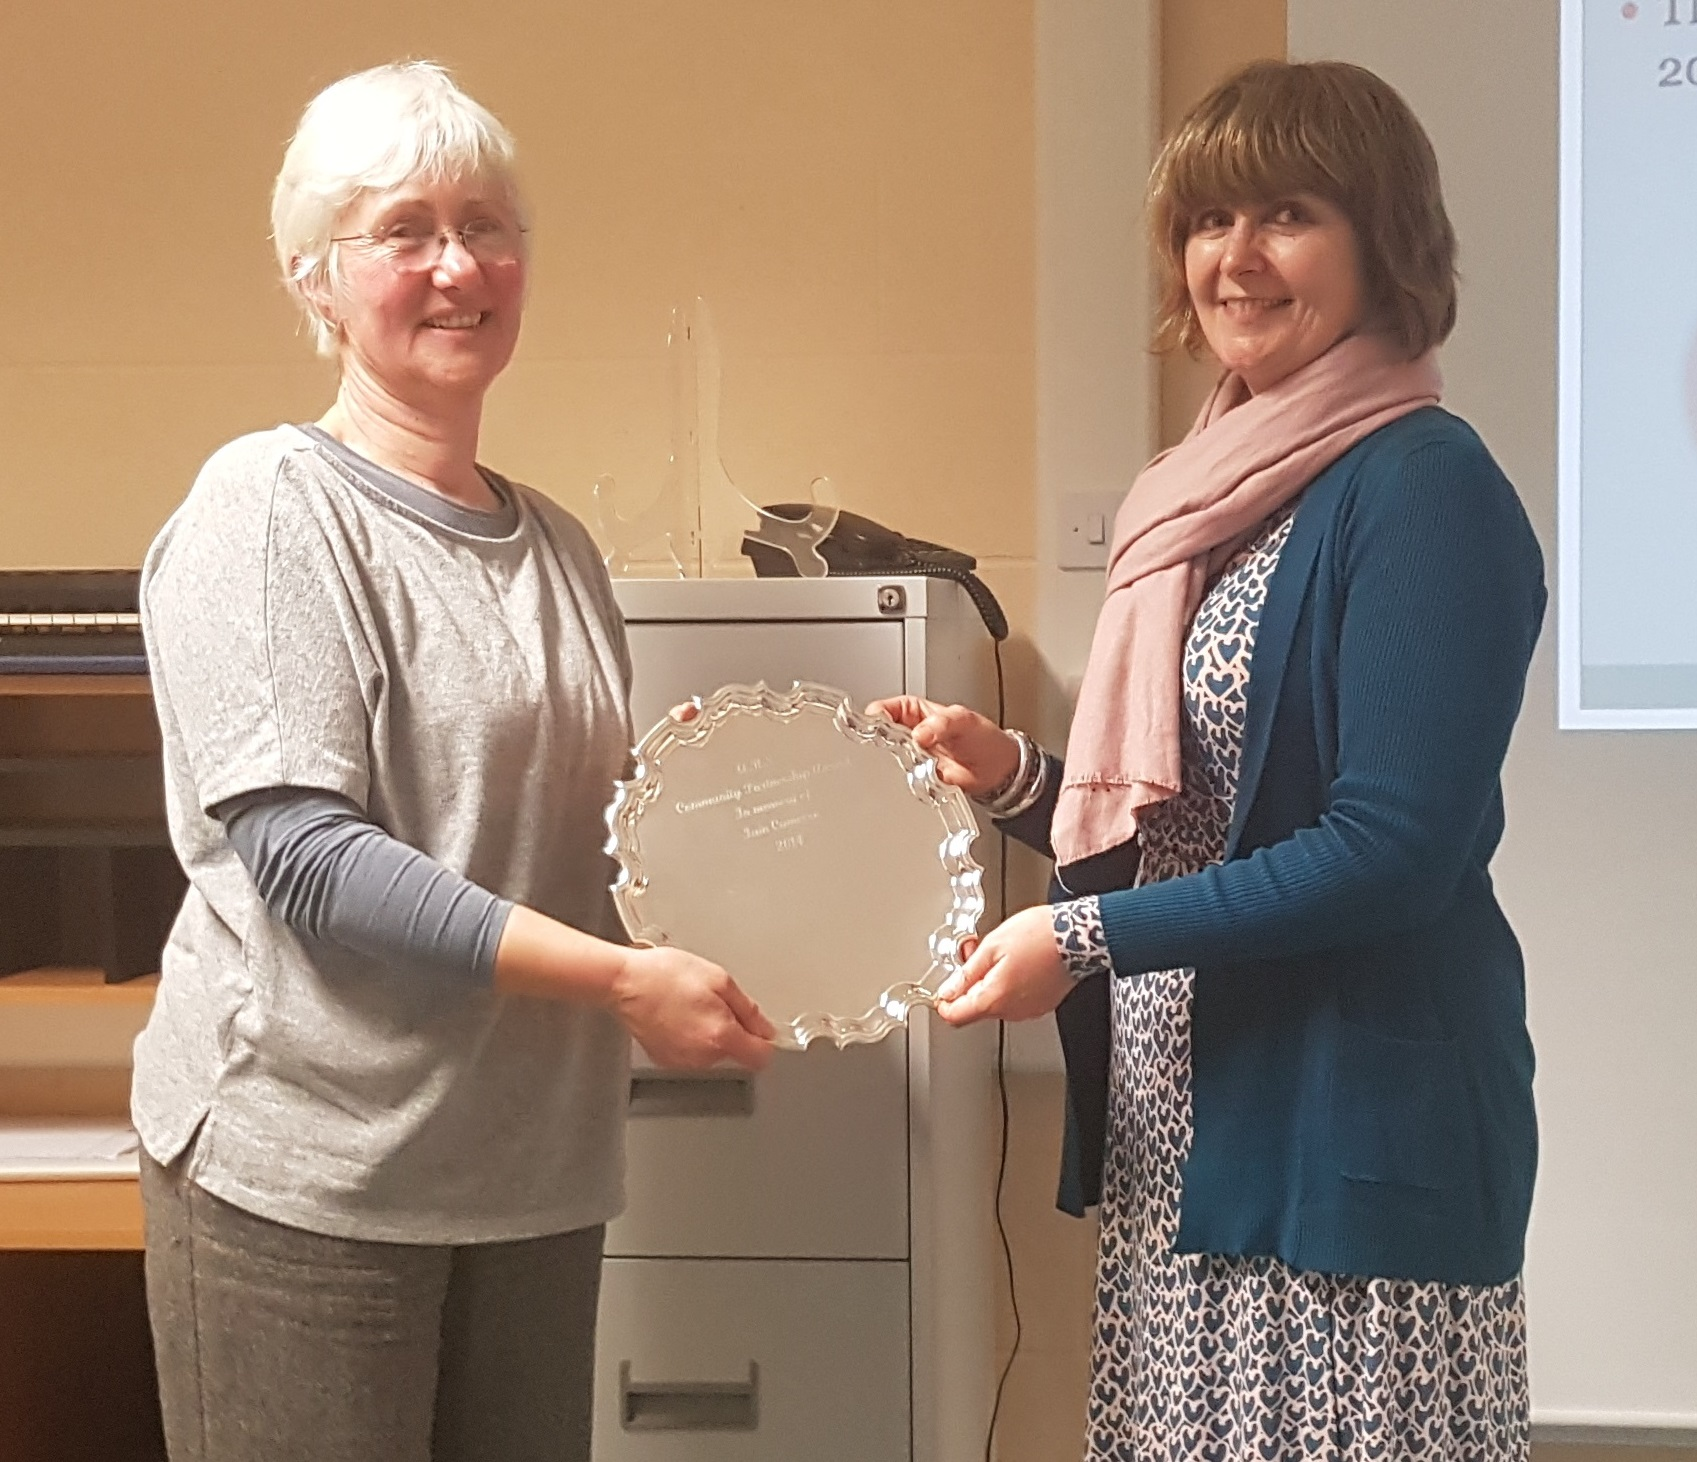 Mrs Wendy Green (left) receives the Iain Cameron Partnership Award from Mrs Louise Cameron.